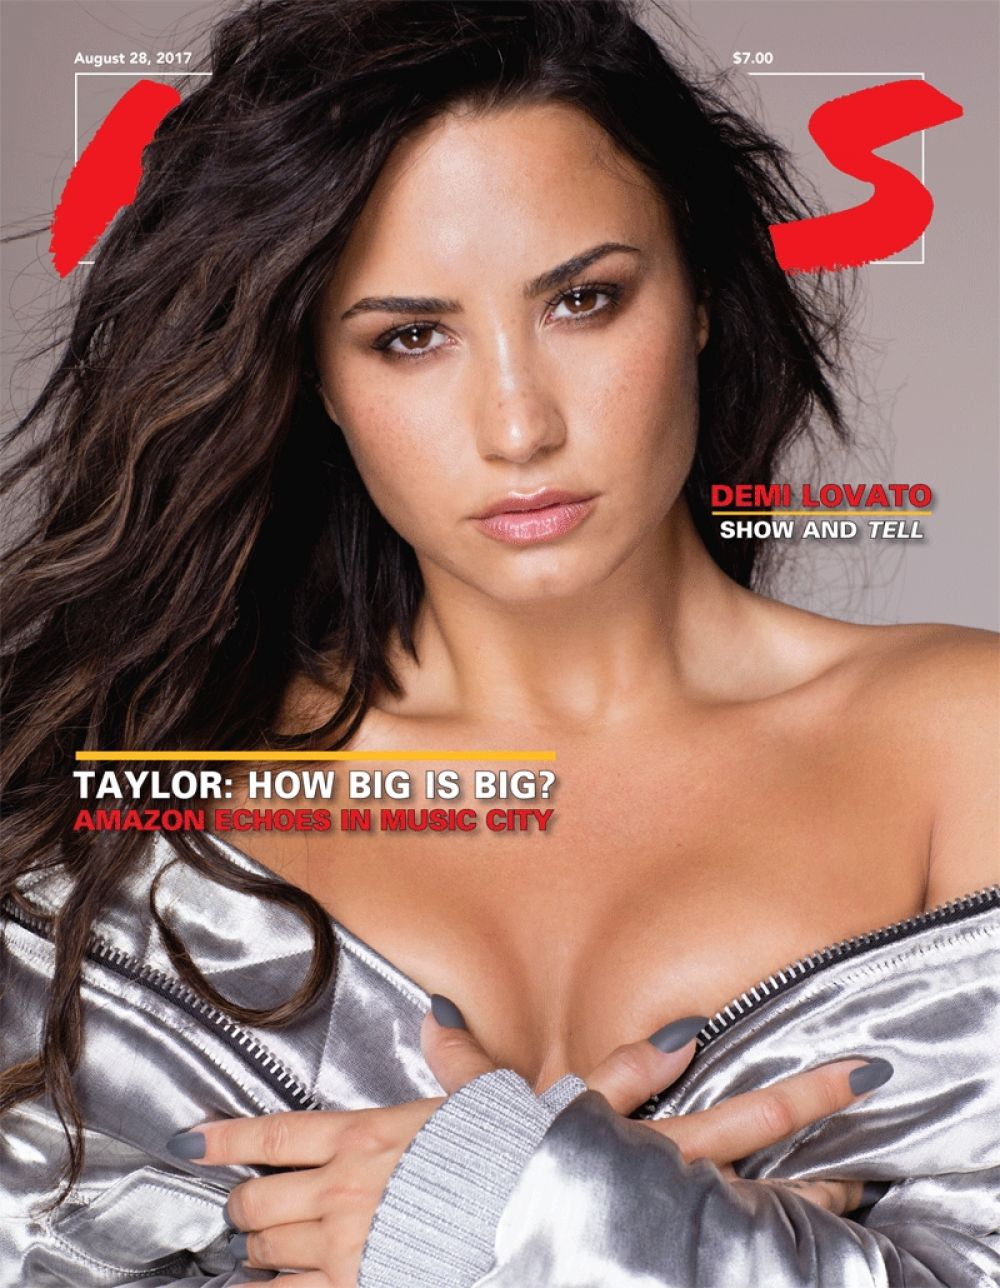 DEMI LOVATO on the Cover of Hits Daily Double Magazine, 08/28/2017